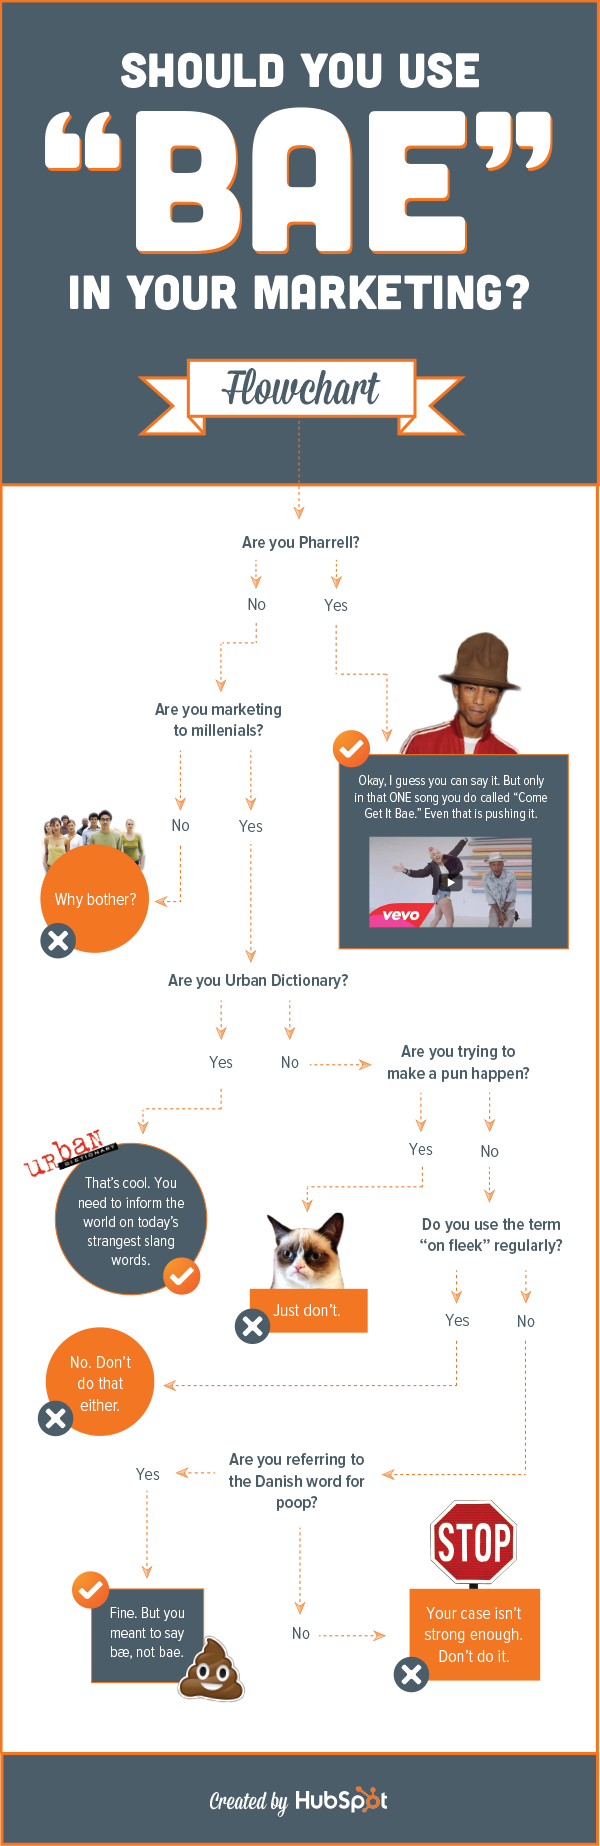 "HubSpot flowchart - Should you use ""bae"" in your marketing?"